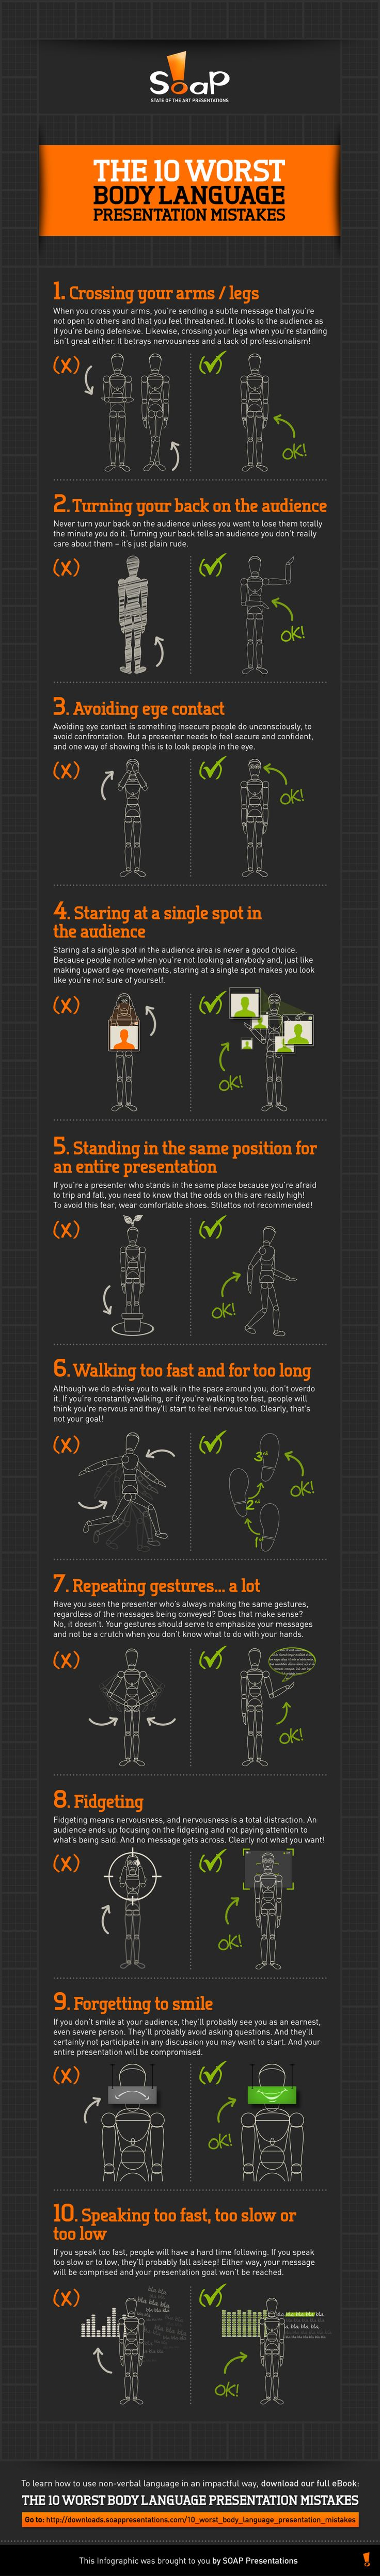 The 10 Worst Body Language Presentation Mistakes #Infographic